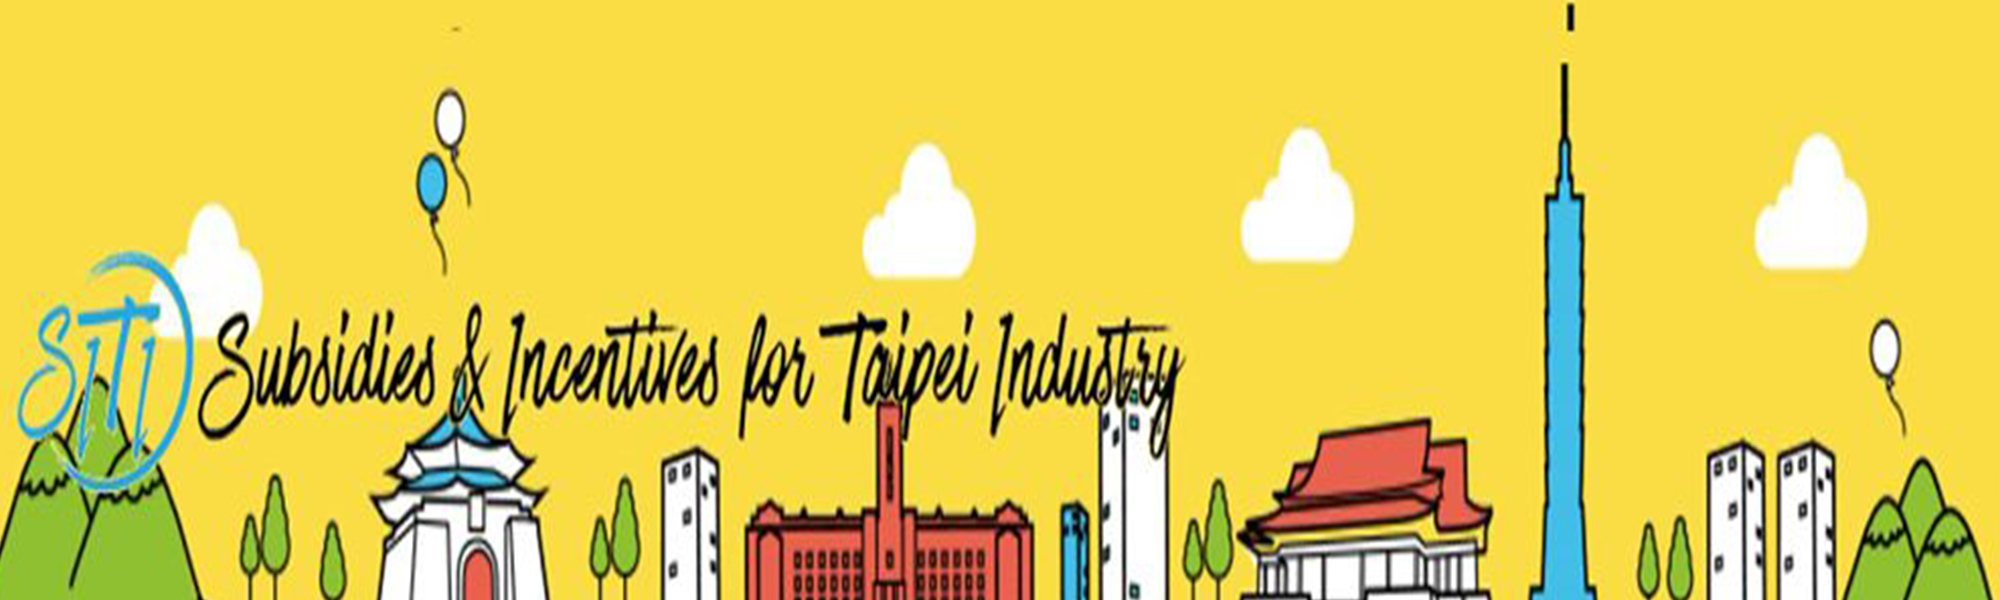 industry-incentive